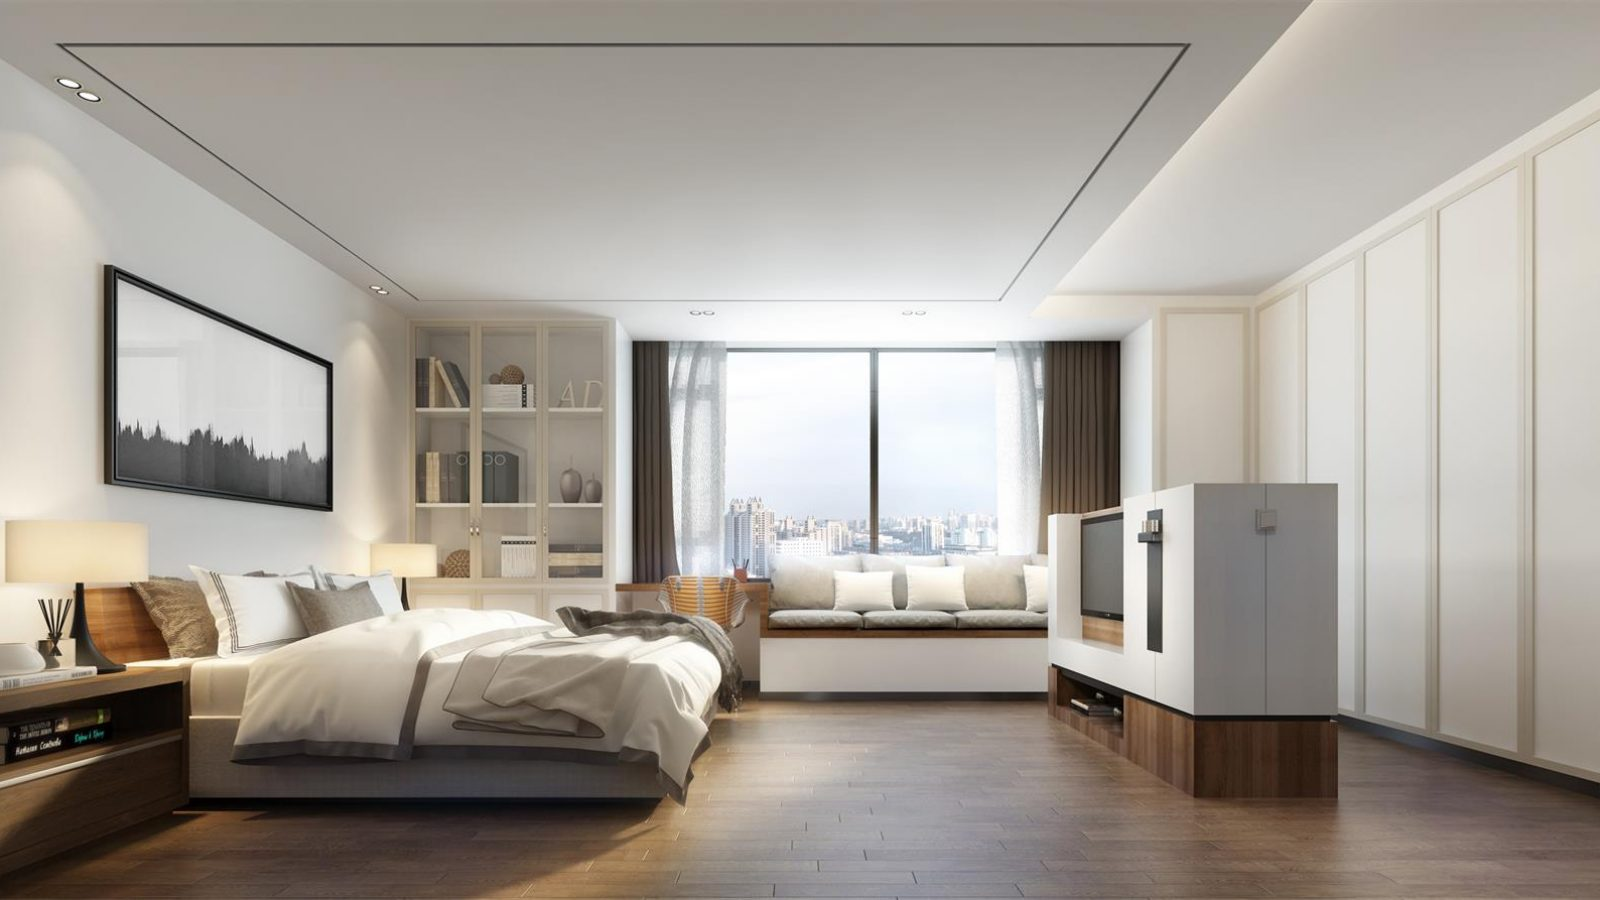 Architectural_Visualization_3D_Rendering_AIMIRCG.COM_101054